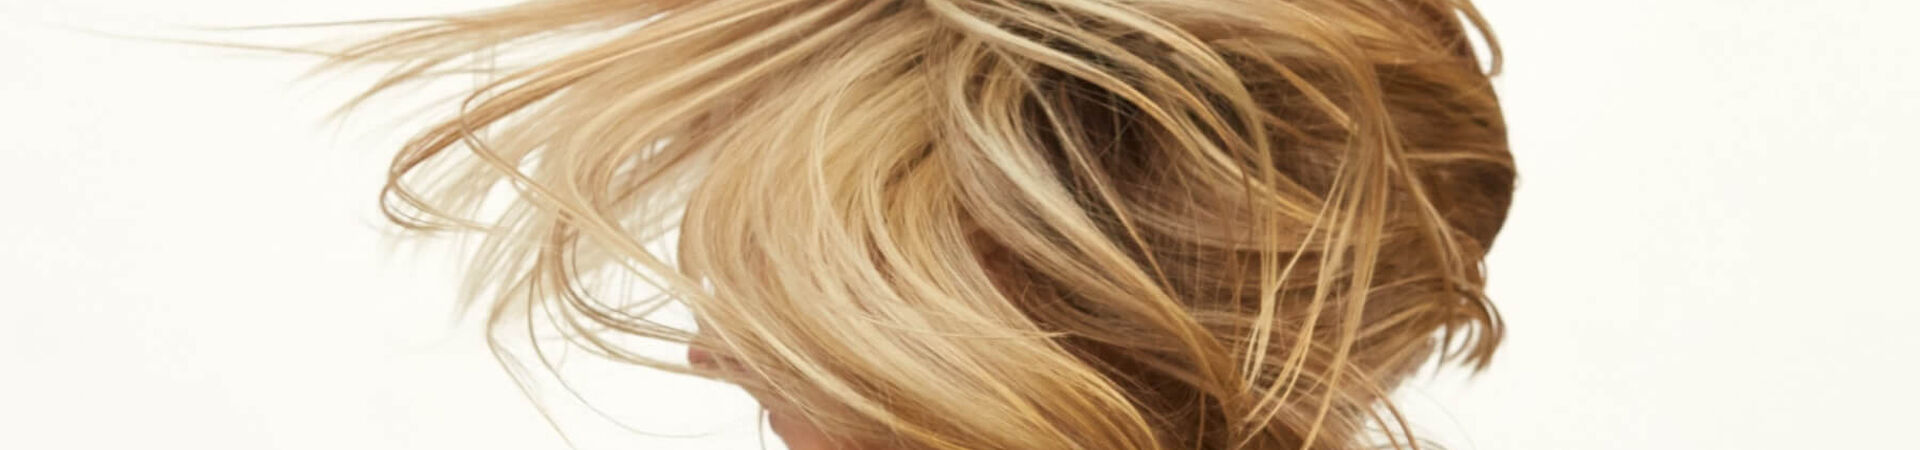 Banner - Keeping Blond Hair Bright